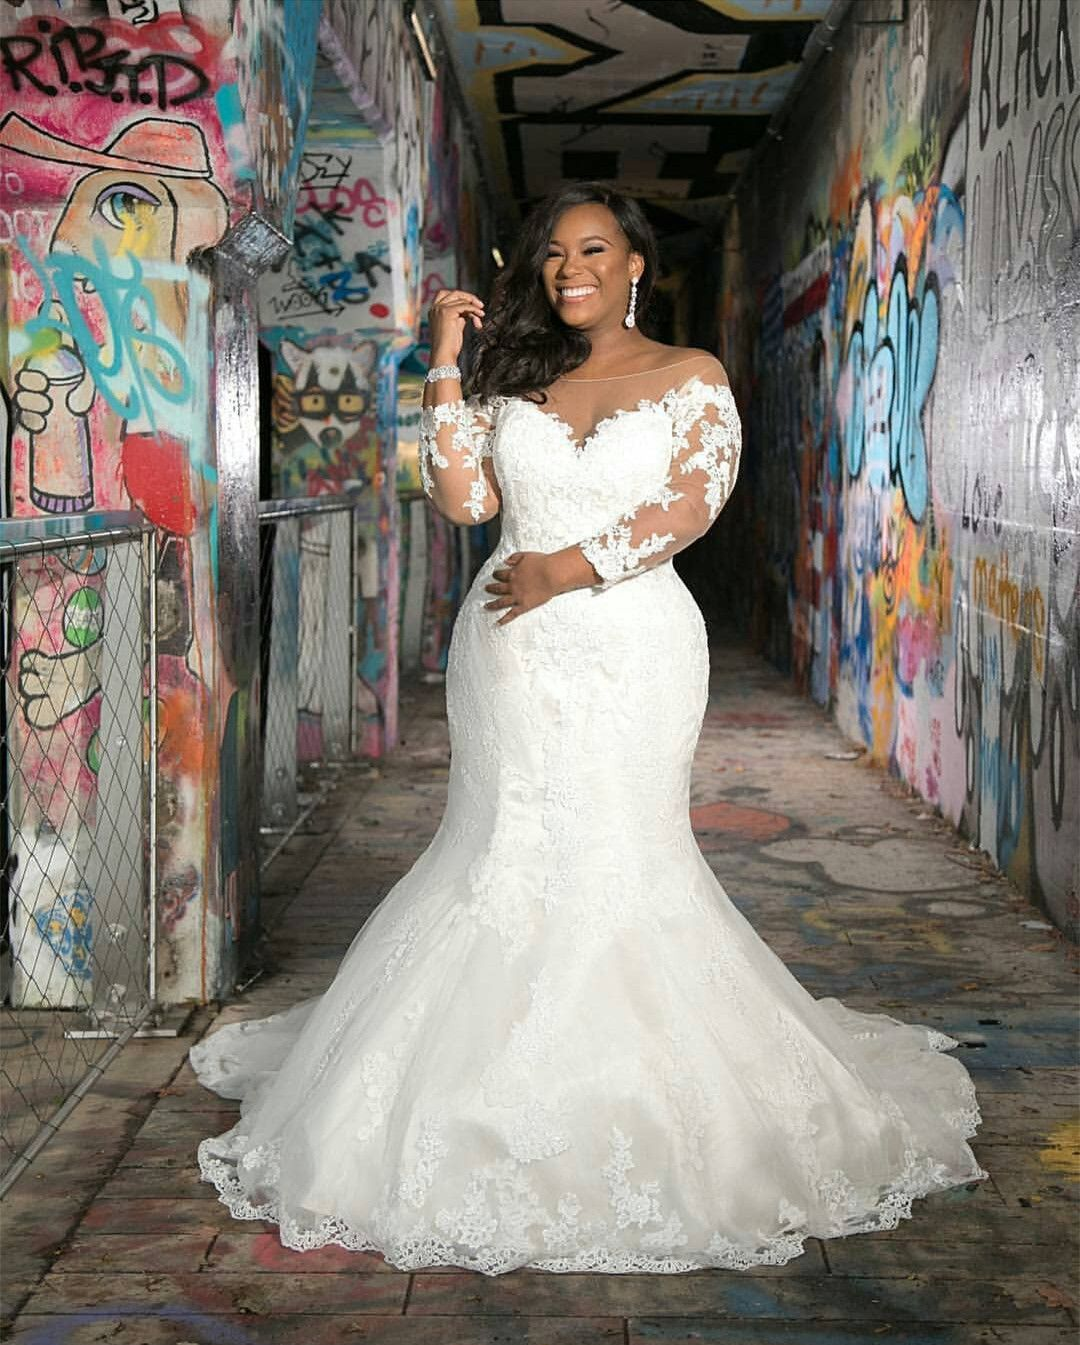 Off The Shoulder Mermaid Lace Plus Size Wedding Dress Long Sleeves Women Bridal Gowns In 2021 White Long Sleeve Wedding Dress Plus Size Wedding Gowns Wedding Dresses [ 1345 x 1080 Pixel ]